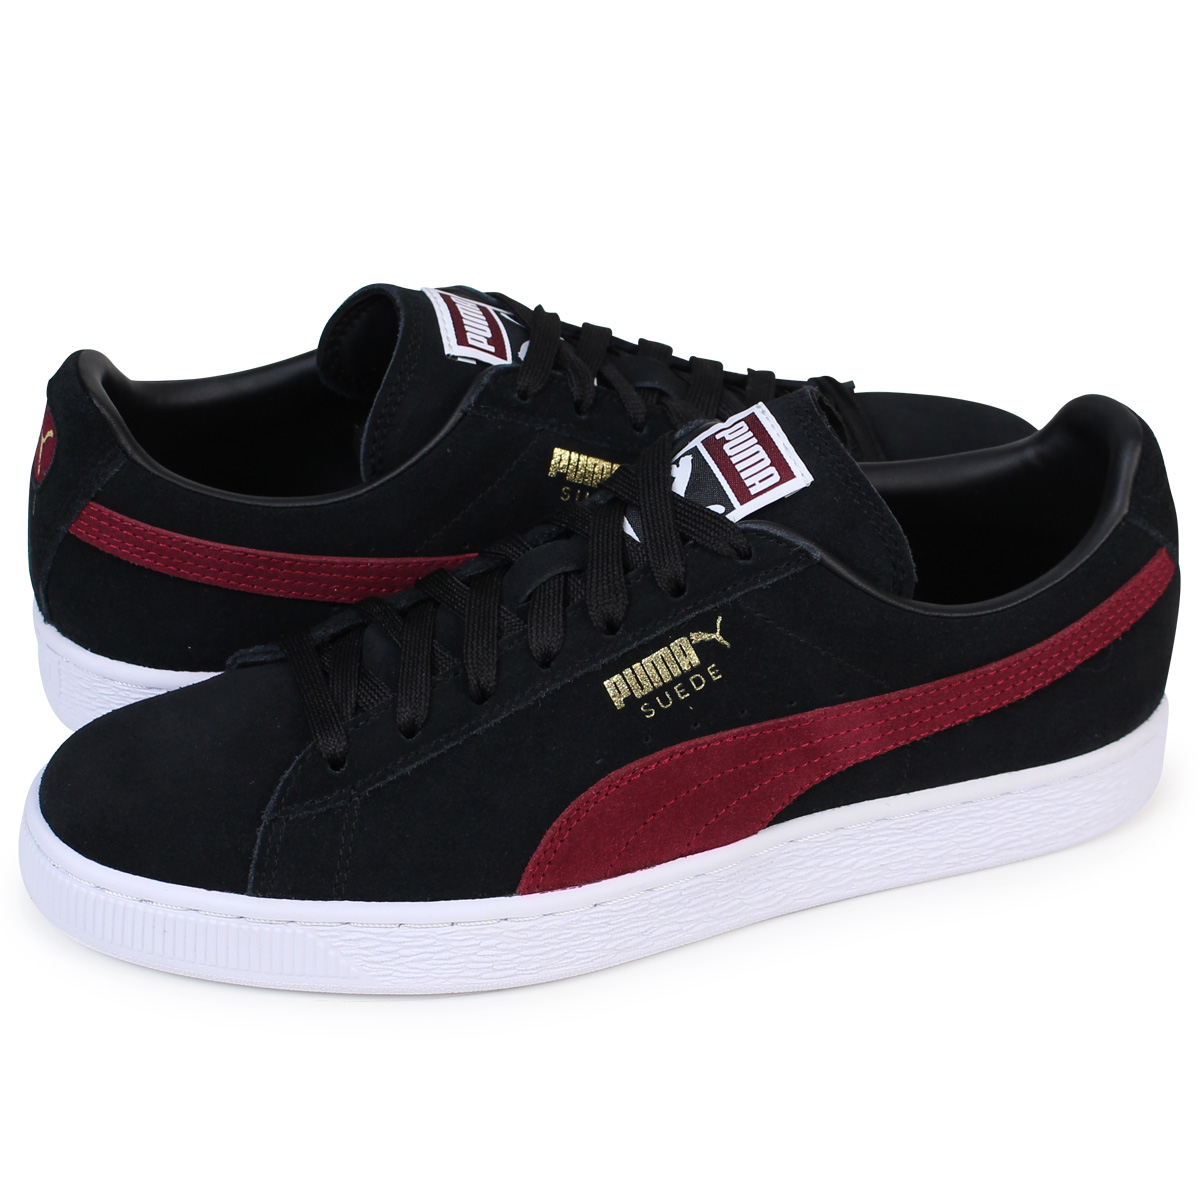 PUMA SUEDE CLASSIC + Puma suede classical music sneakers 363,242-31 men's  lady's shoes black [load planned Shinnyu load in reservation product 12/14  ...